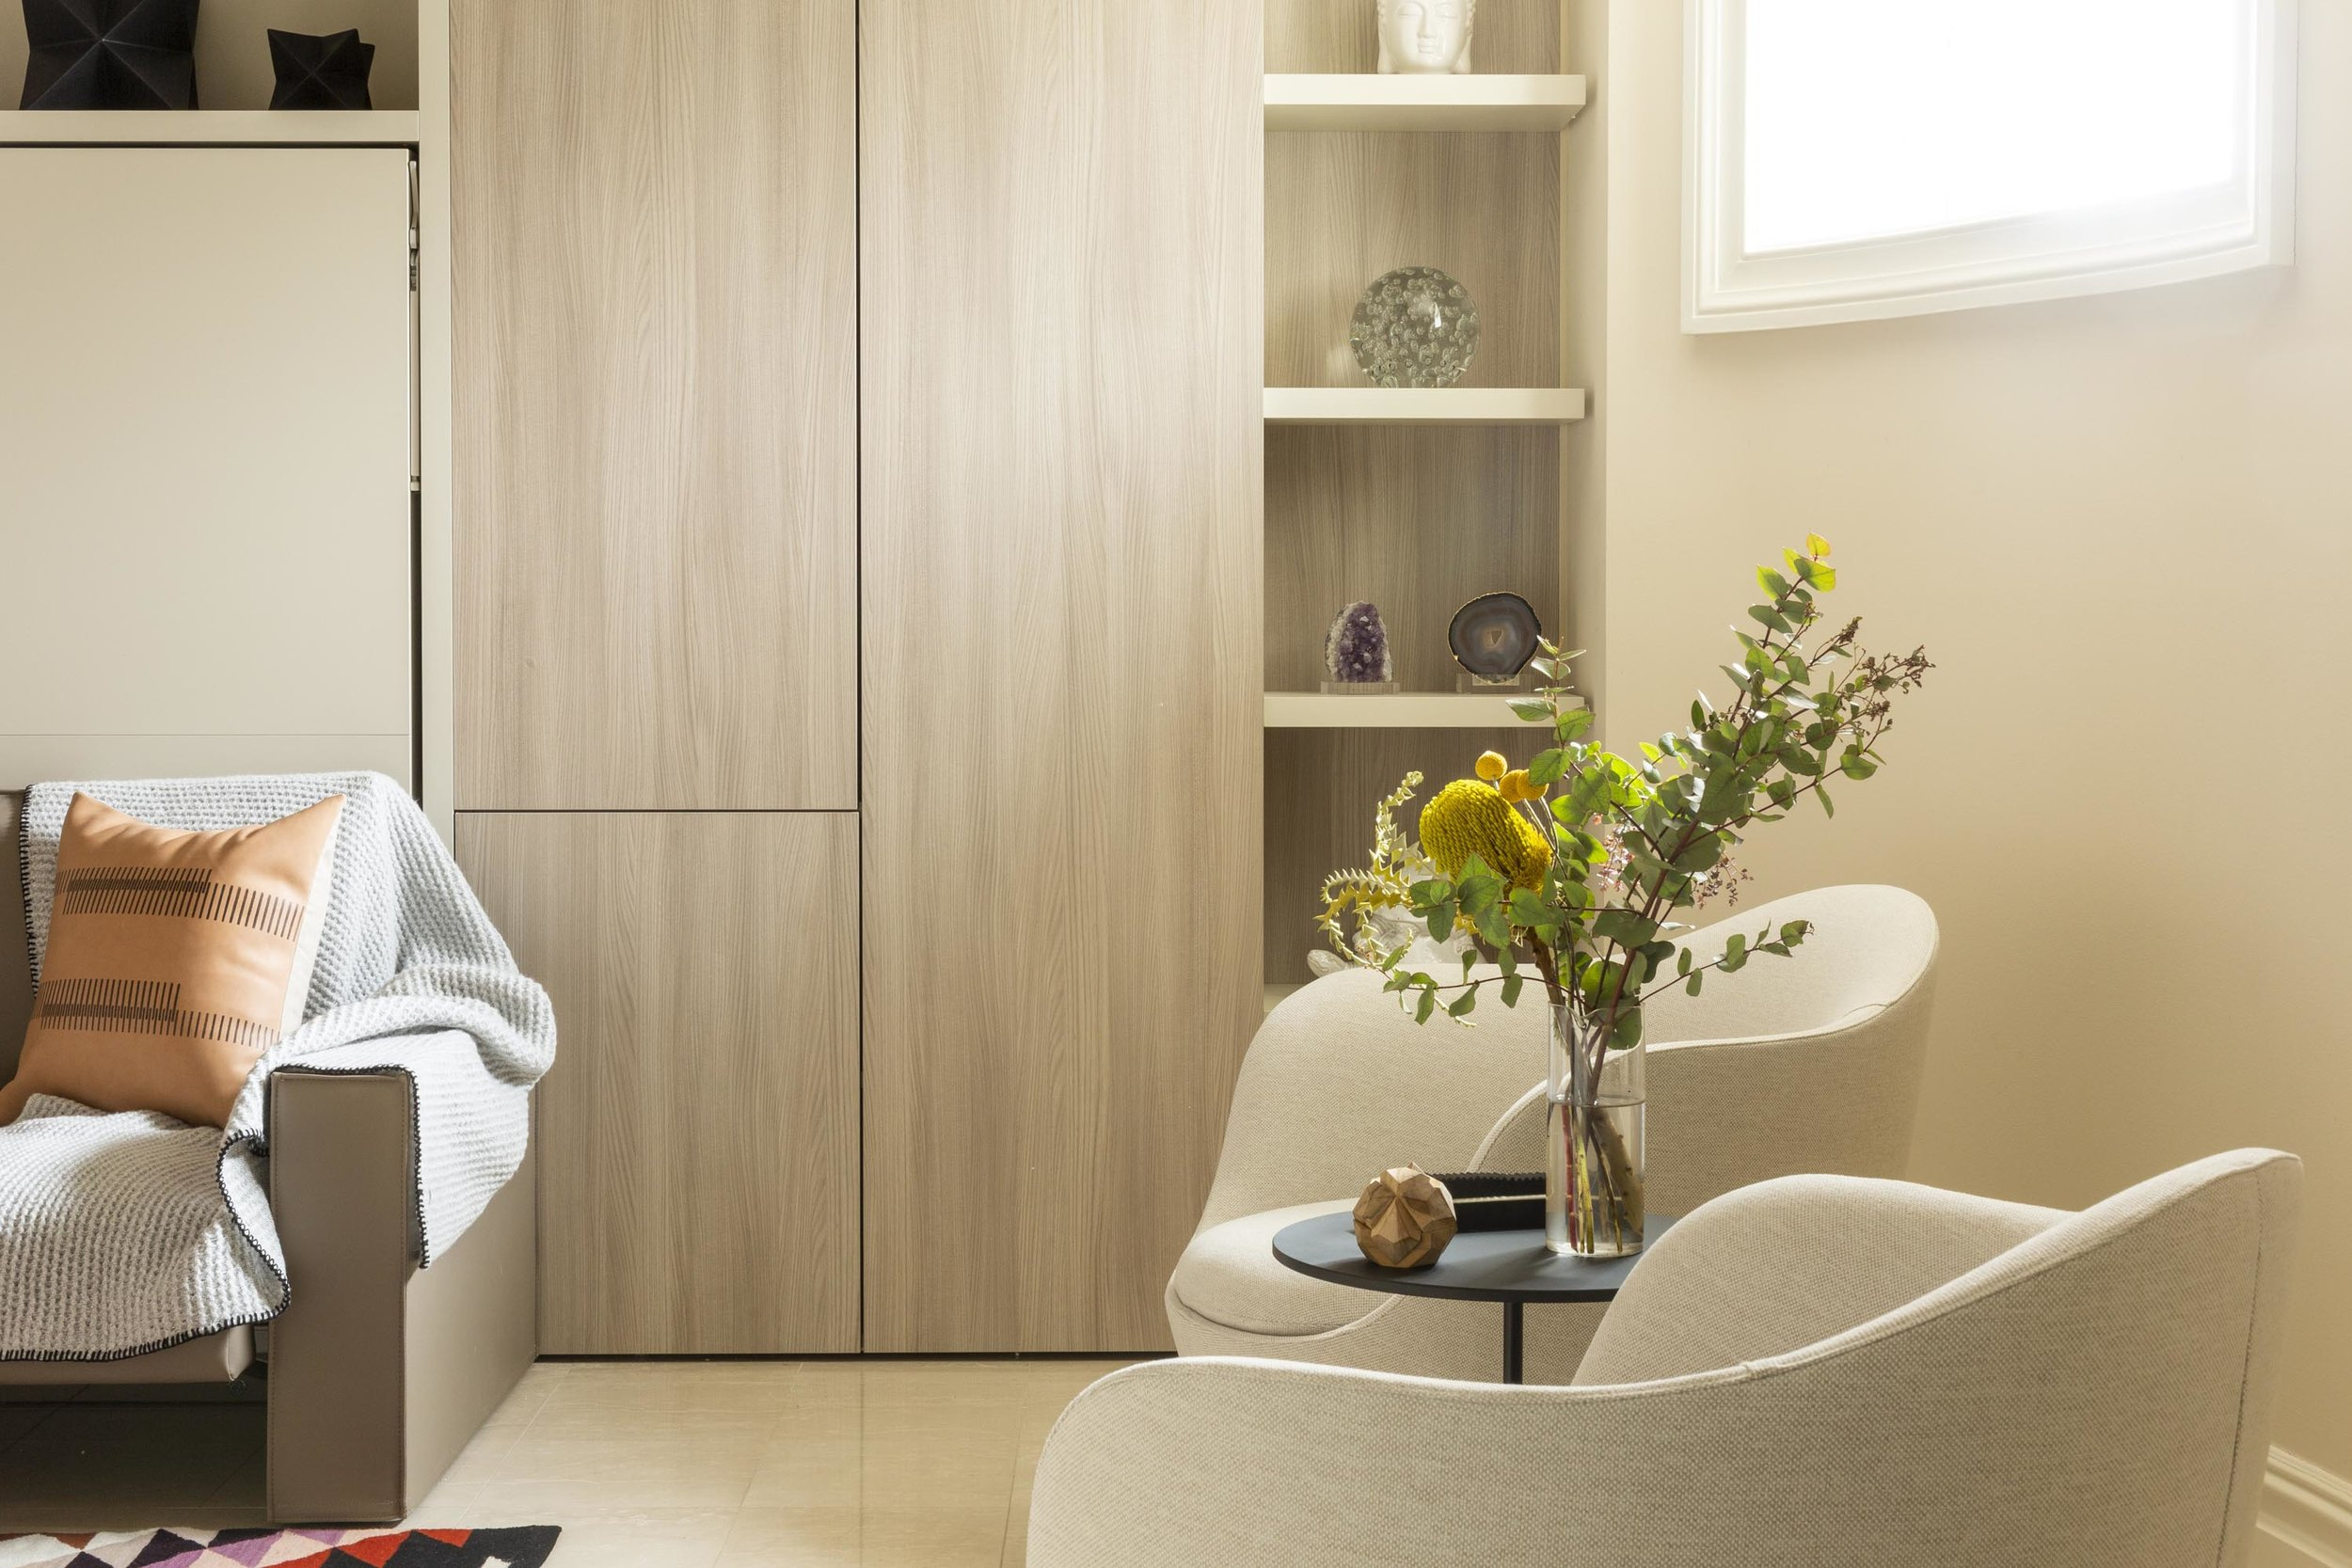 A room with wooden cabinet, armchair and flowers on a clear glass